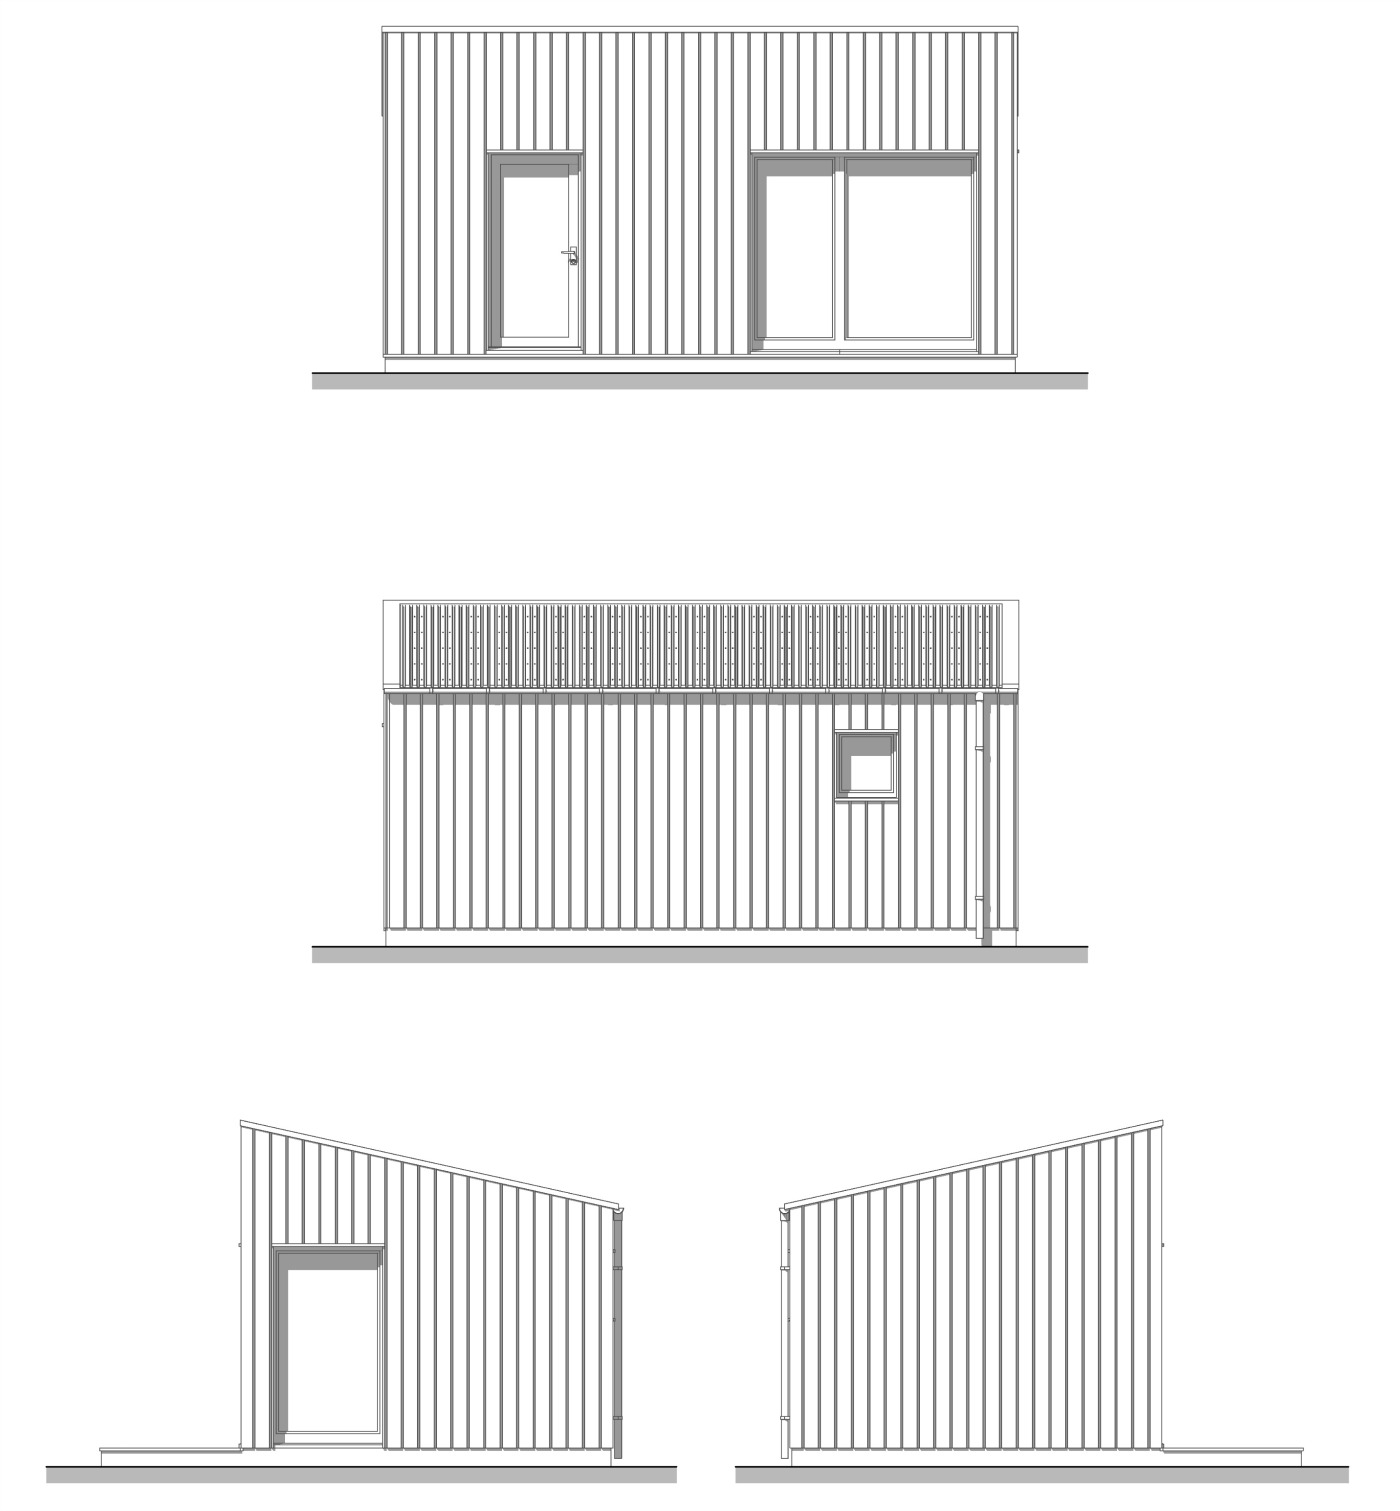 Bothy Beag Elevations